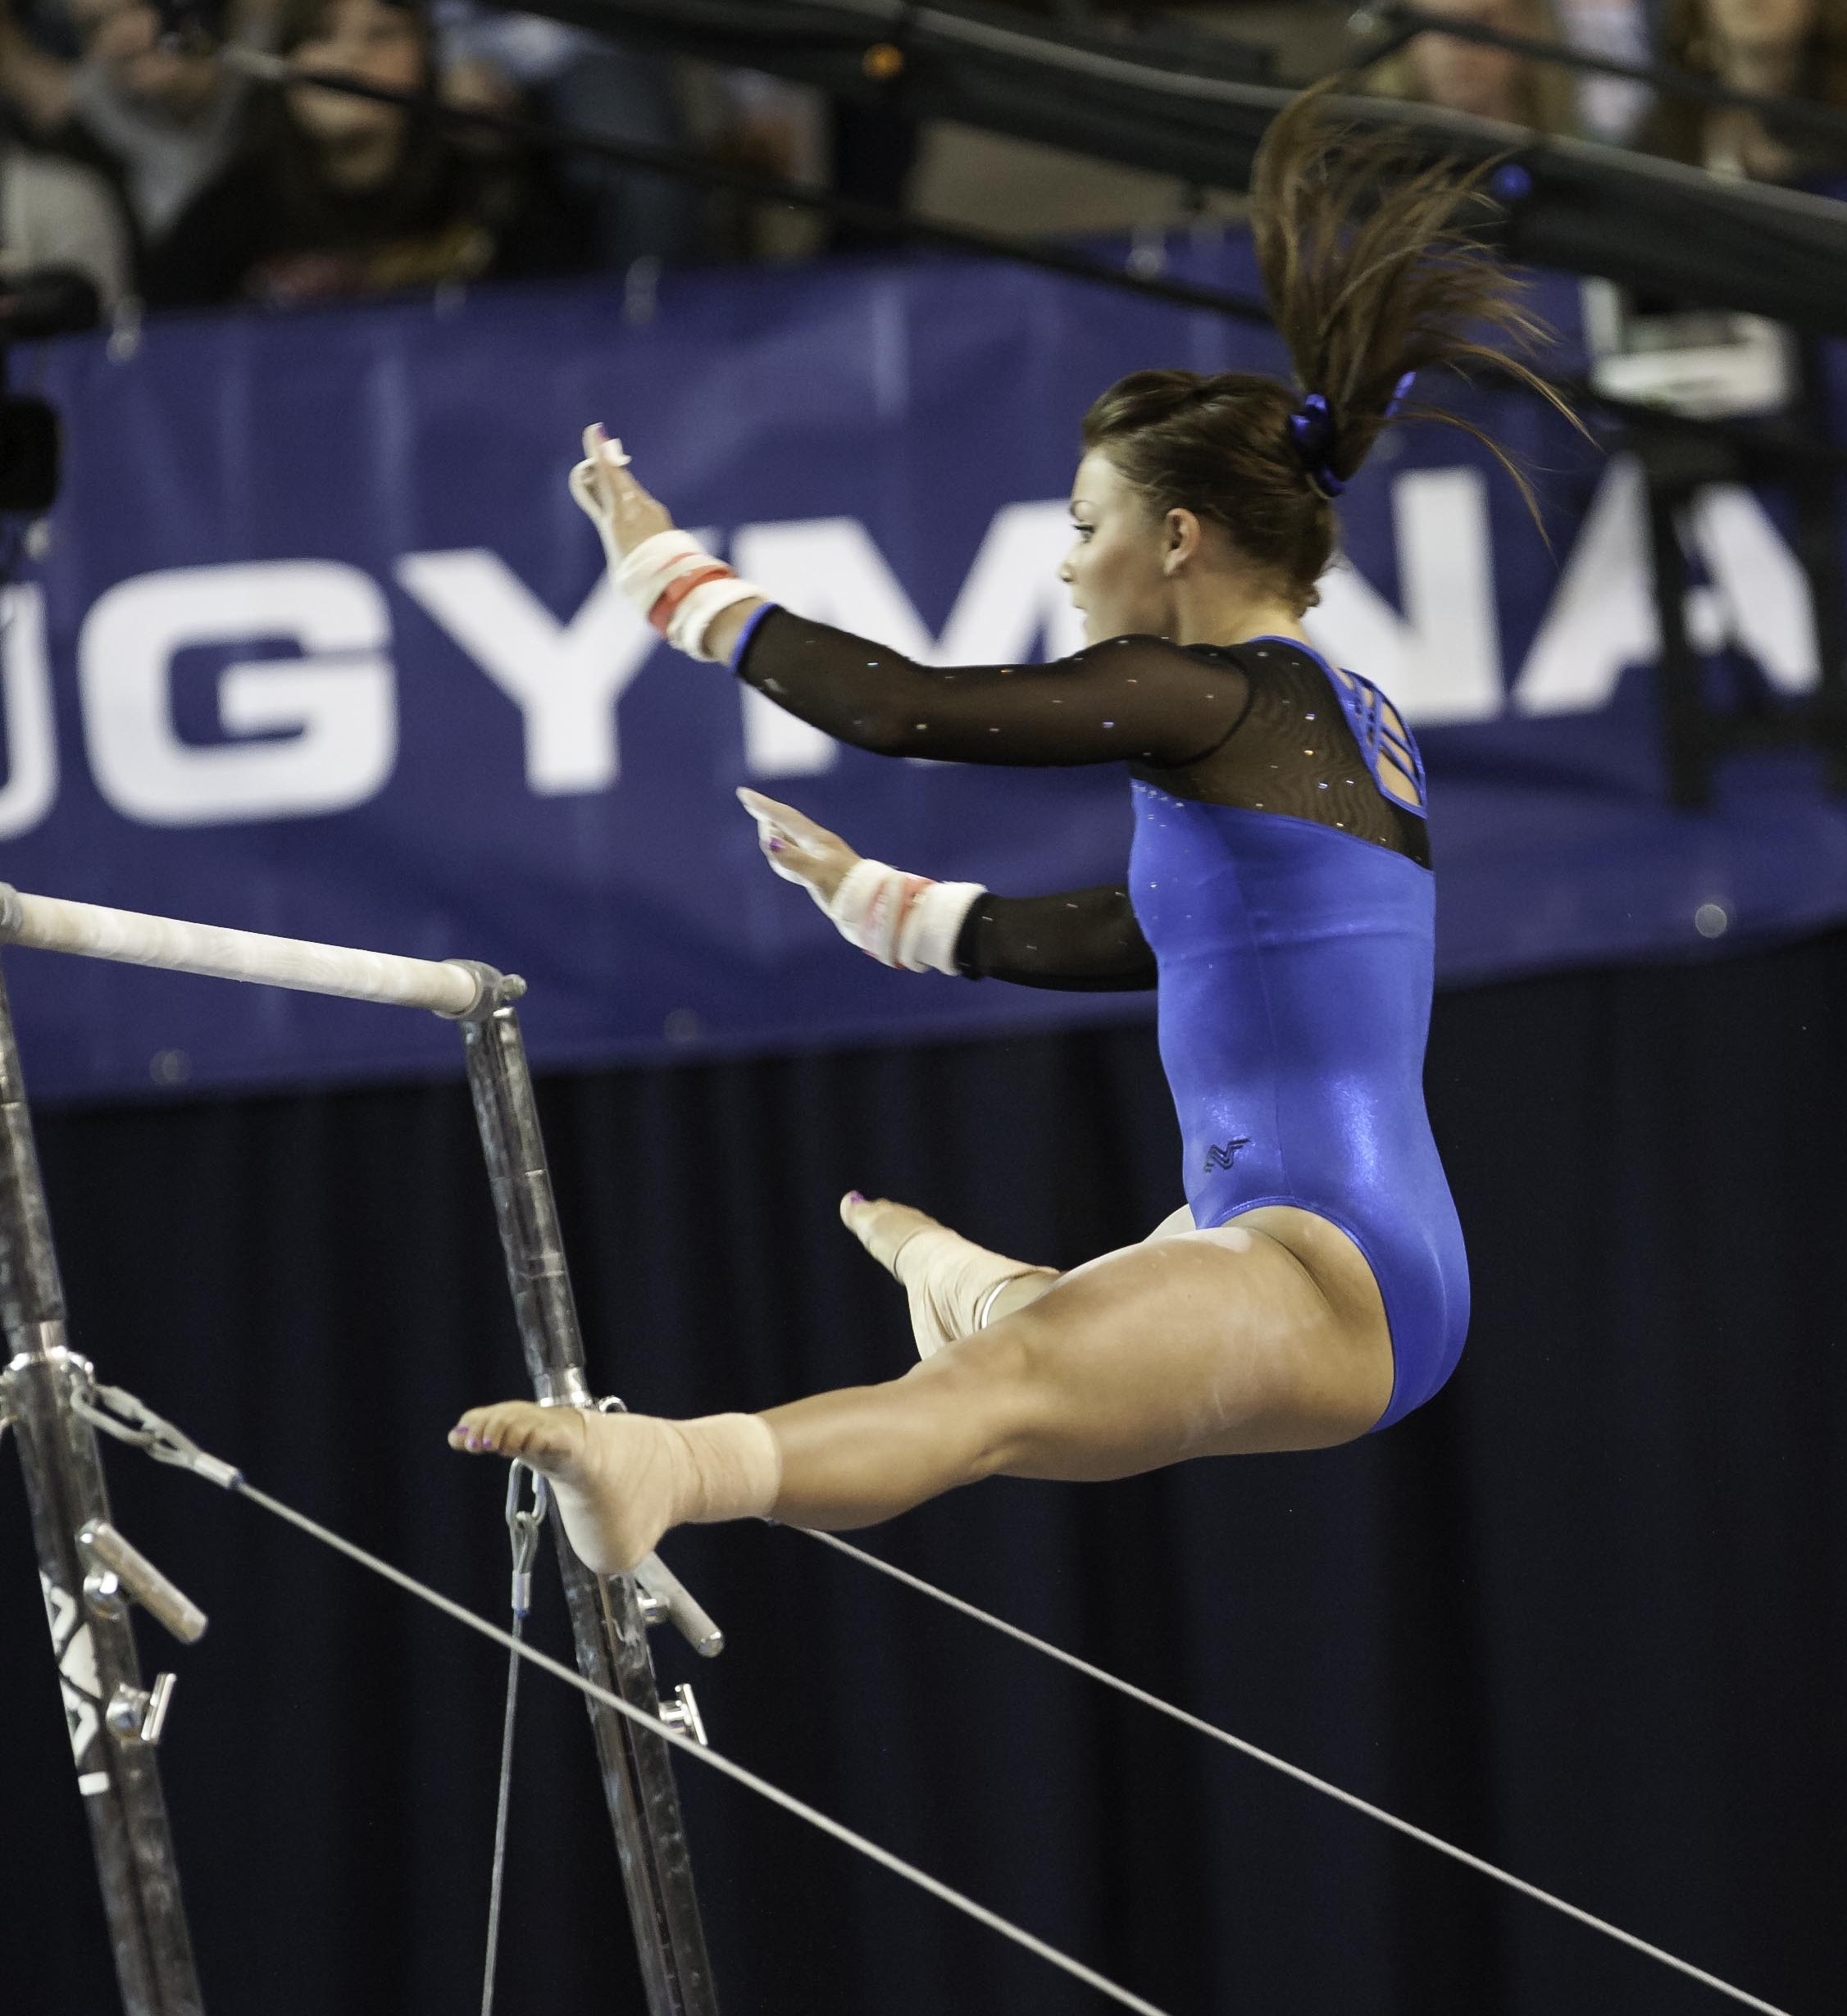 Sarah Yandow Wensel on the bars in BYU's gymnastics meet against Biose State on Saturday. (Photo by Elliott Miller)